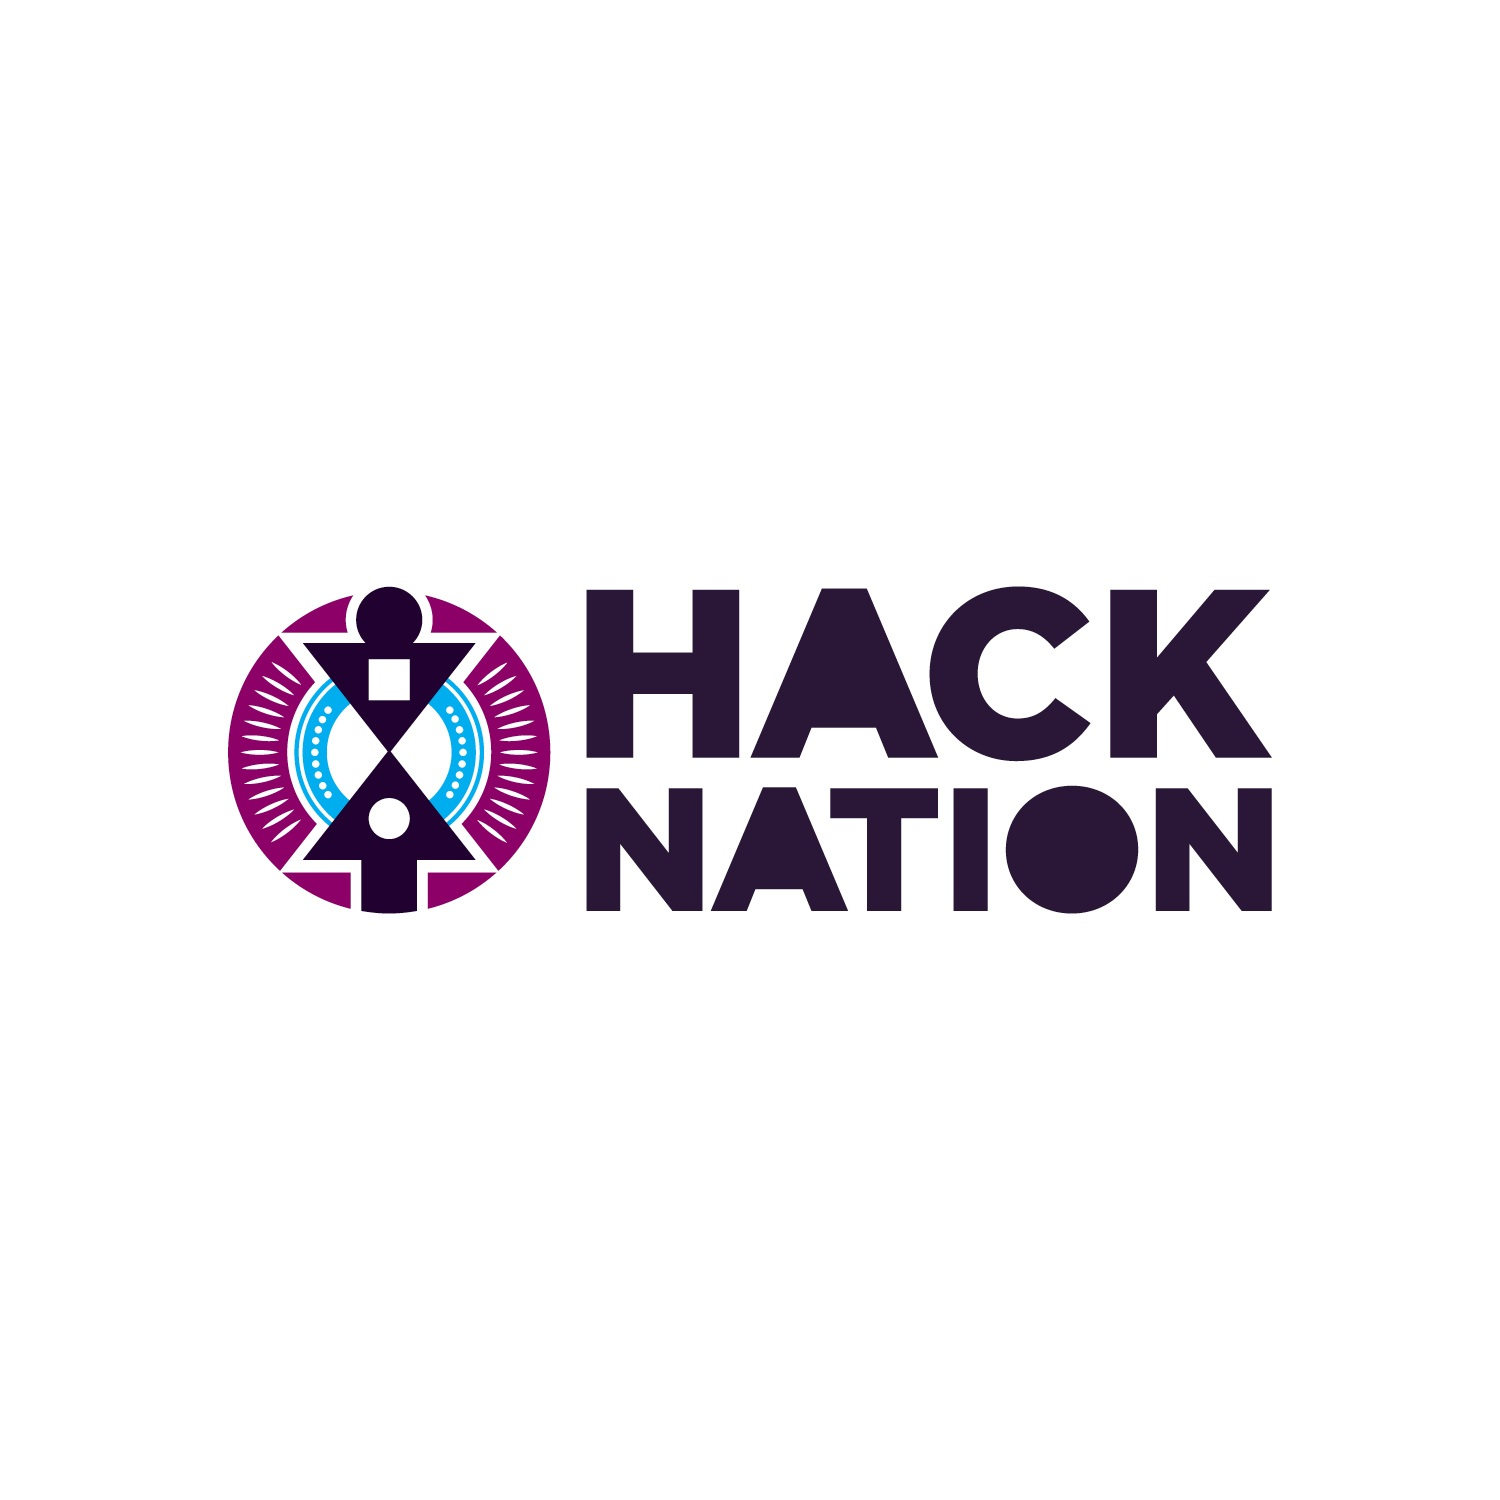 Hack Nation